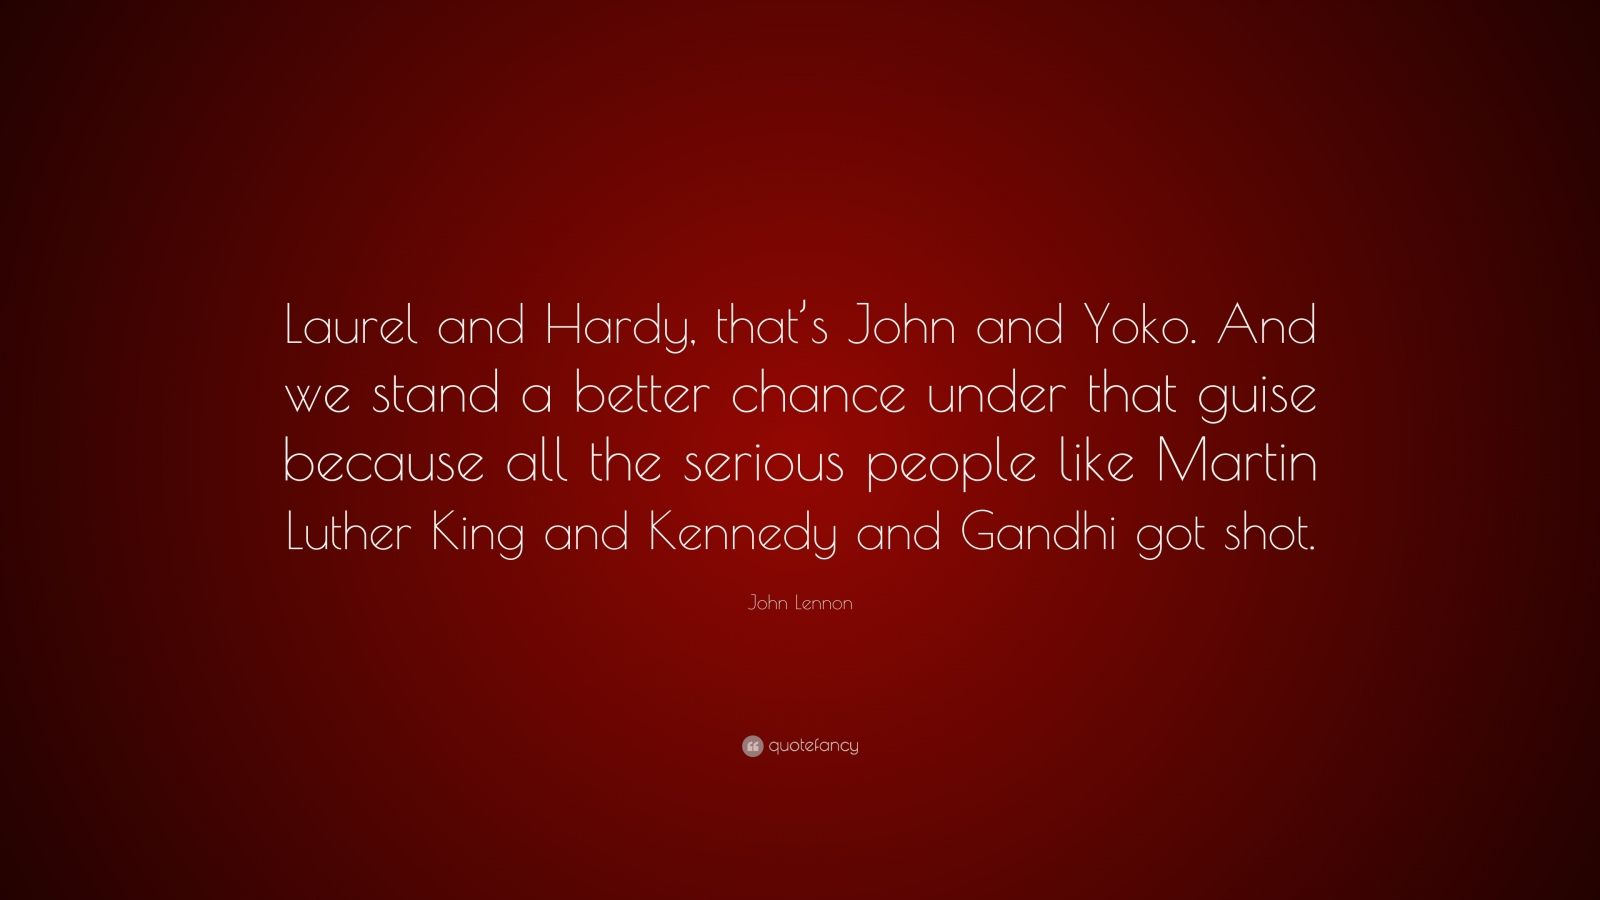 """John Lennon Quote: """"Laurel and Hardy, that's John and Yoko. And we stand a better chance under that guise because all the serious people like Martin Luther King and Kennedy and Gandhi got shot."""""""